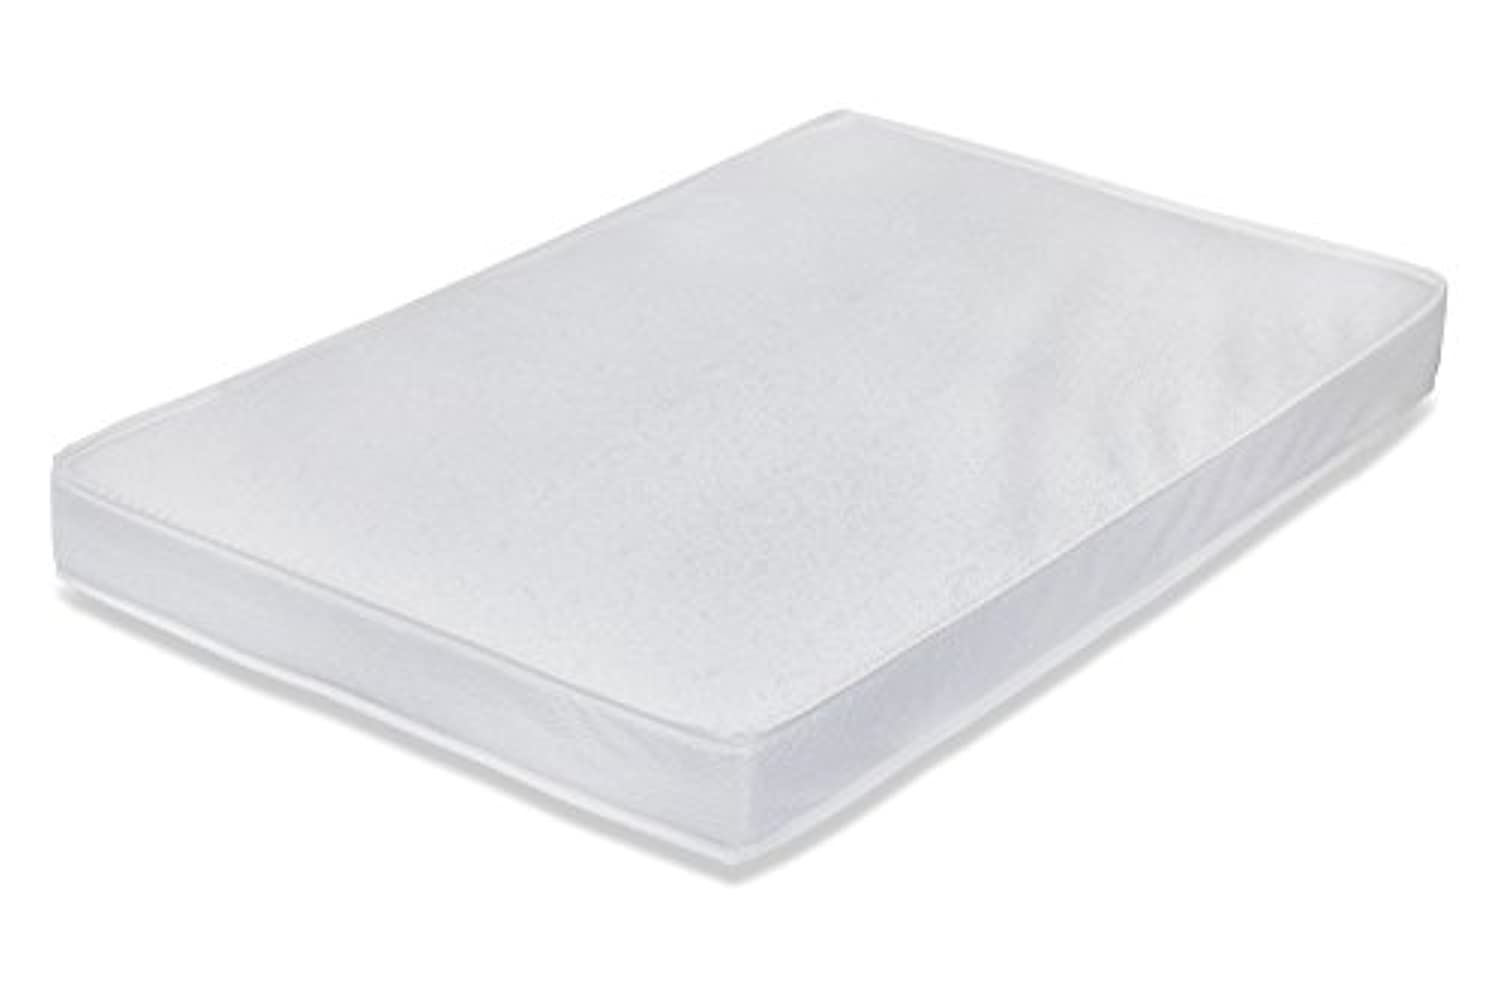 L A Baby Compact Porta Crib Pad Laminate Cover, White by L.A. Baby